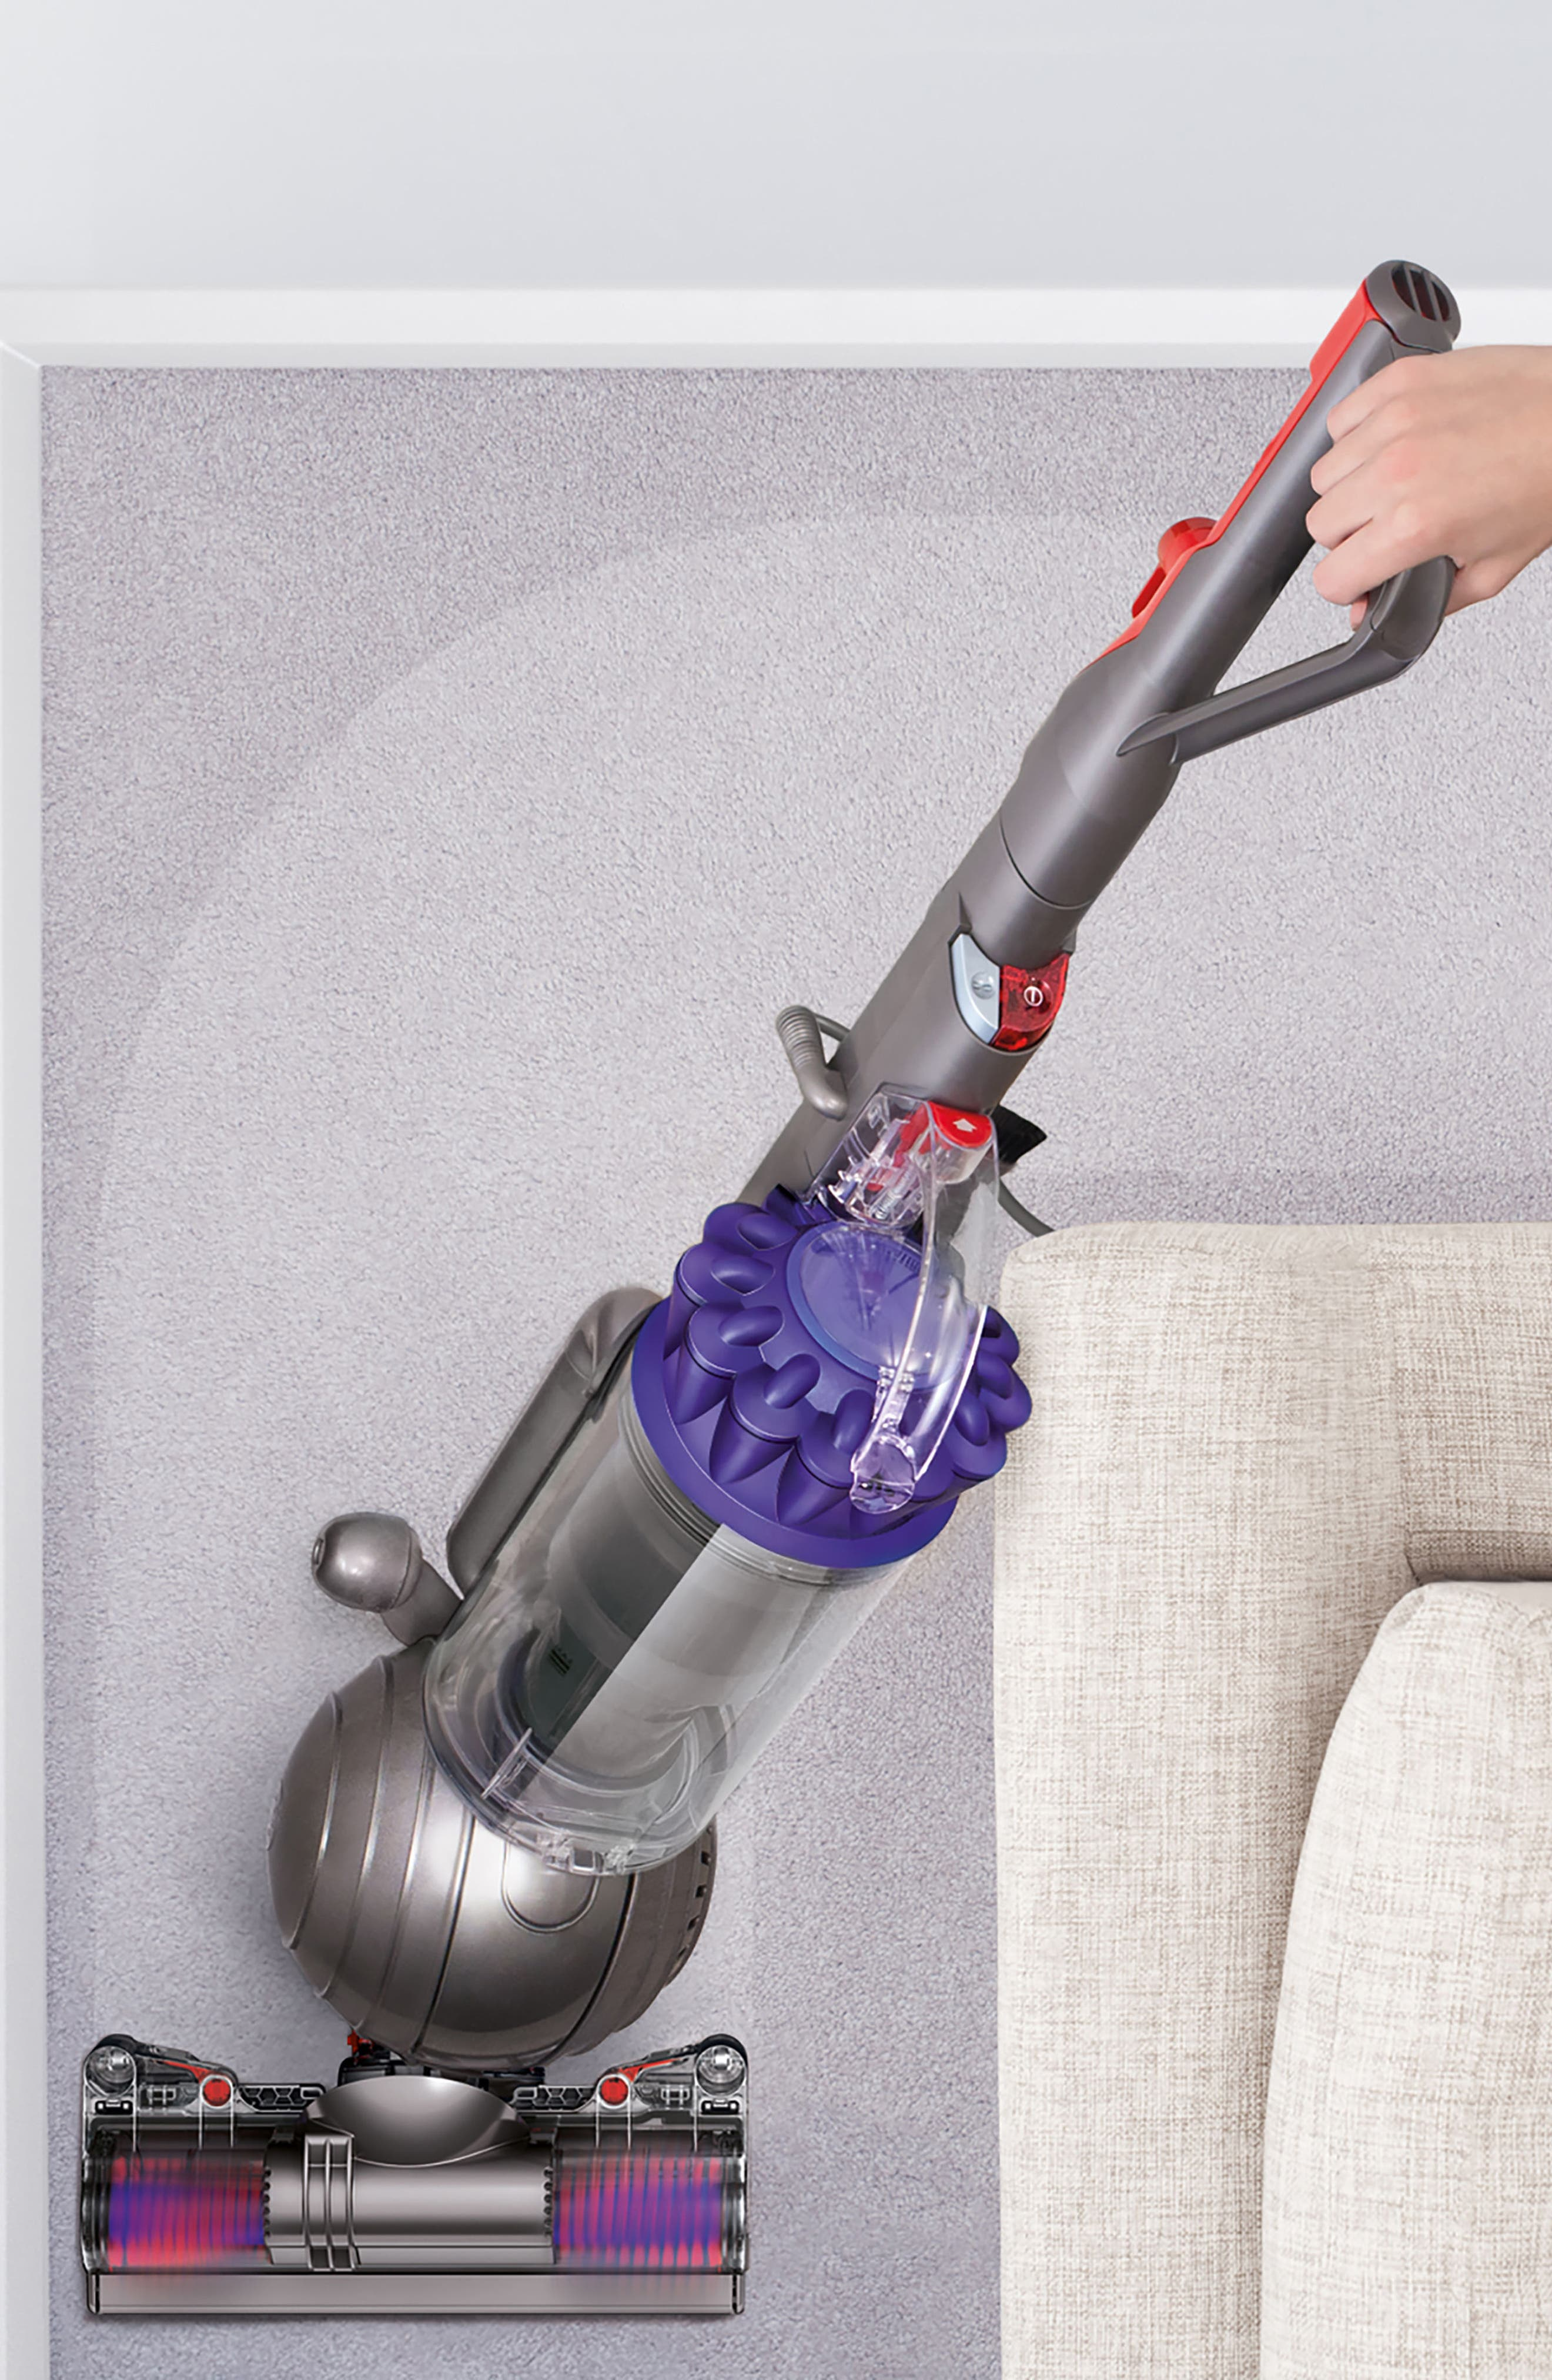 Ball Animal 2 Upright Vacuum Cleaner,                             Alternate thumbnail 6, color,                             020